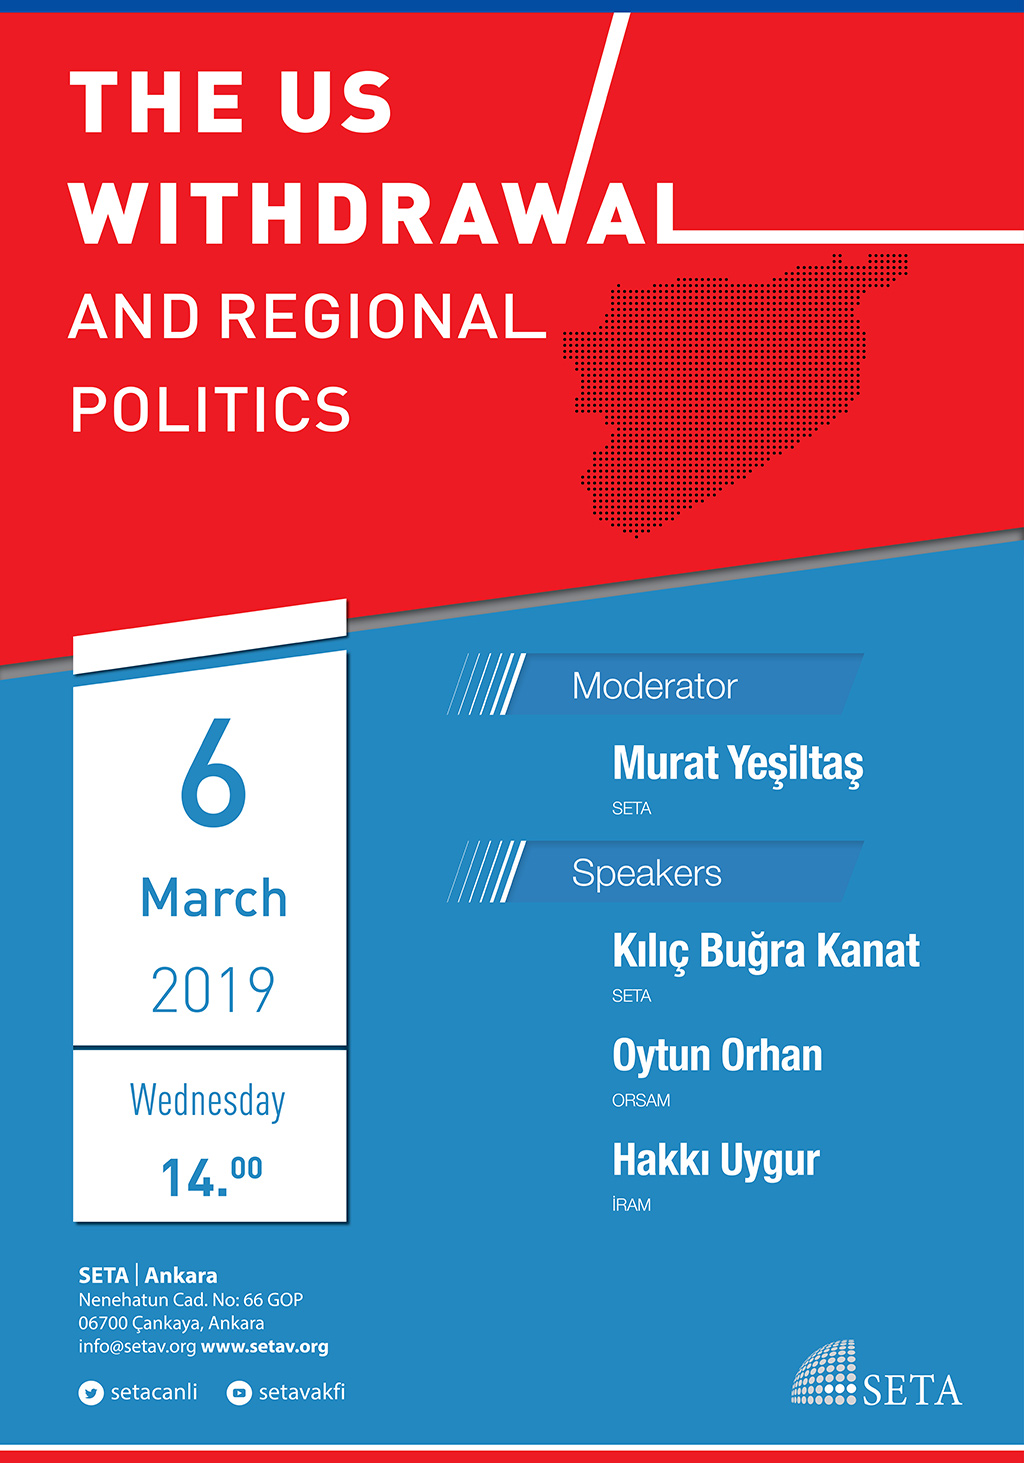 Panel: The US withdrawal and regional politics